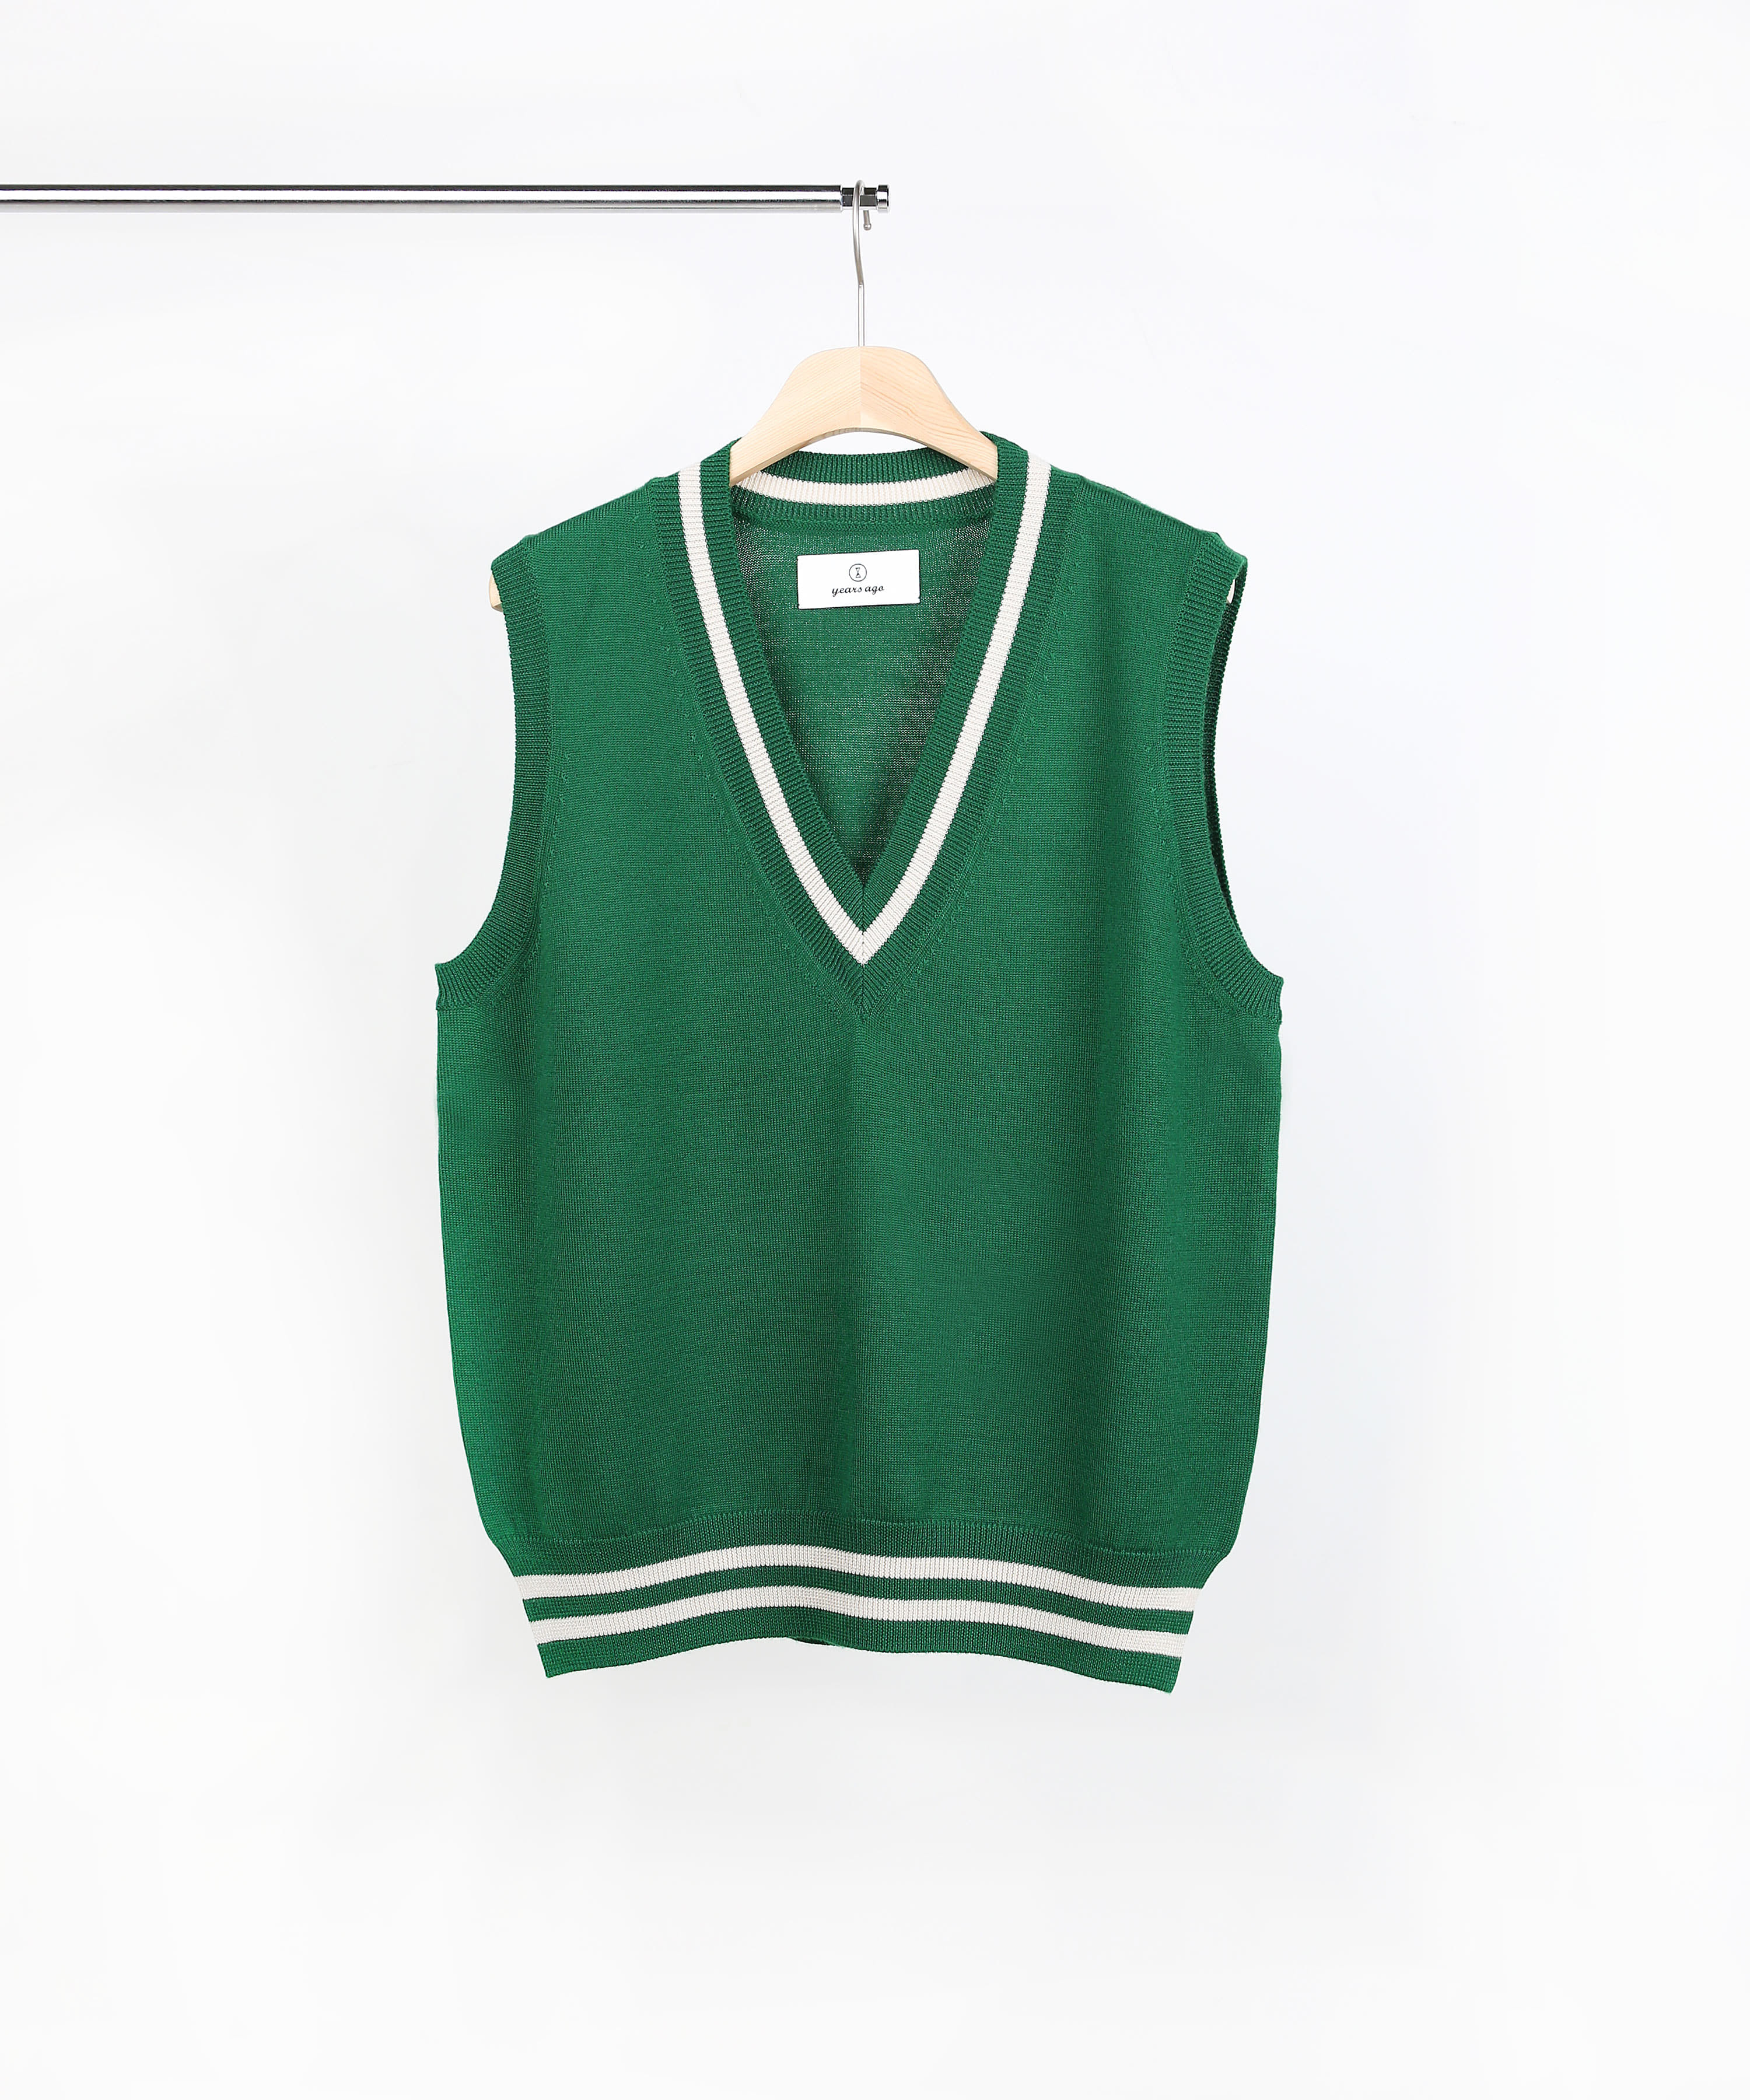 GREEN V-NECK KNIT VEST